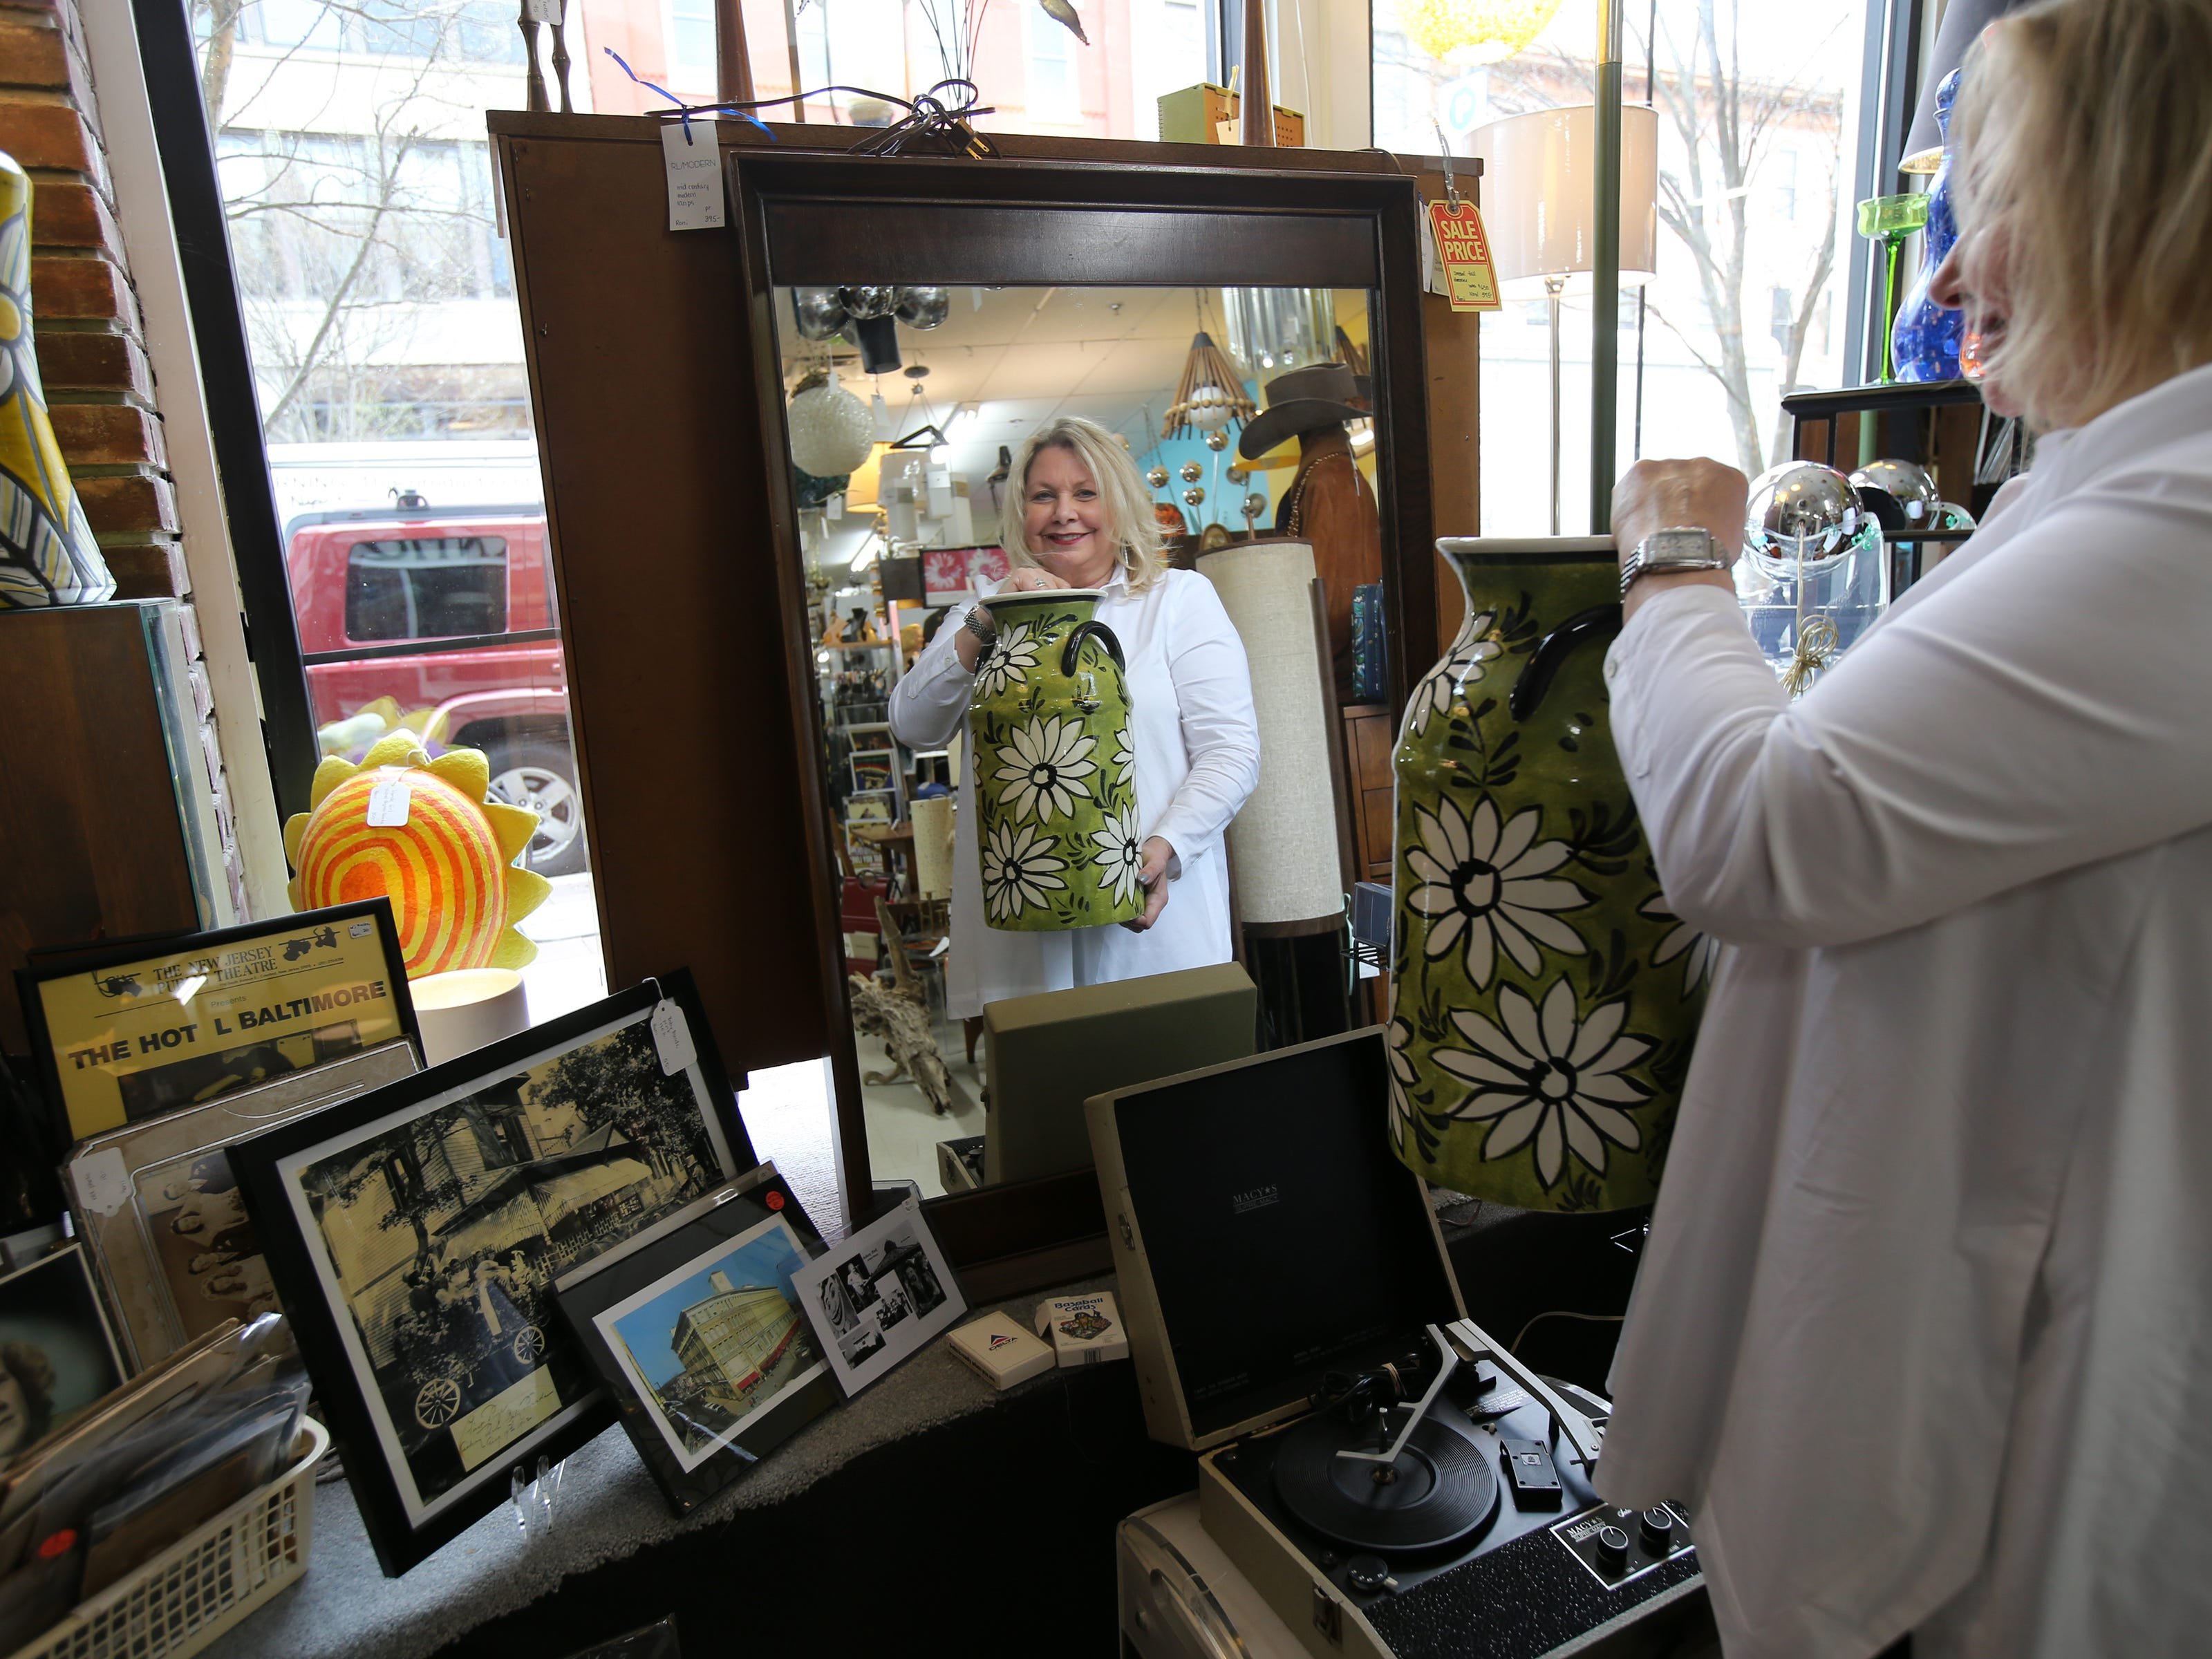 Roni Goldstein, director, talks about some of her favorite items at Antique Emporium of Asbury Park in Asbury Park, NJ Thursday, April 18, 2019.